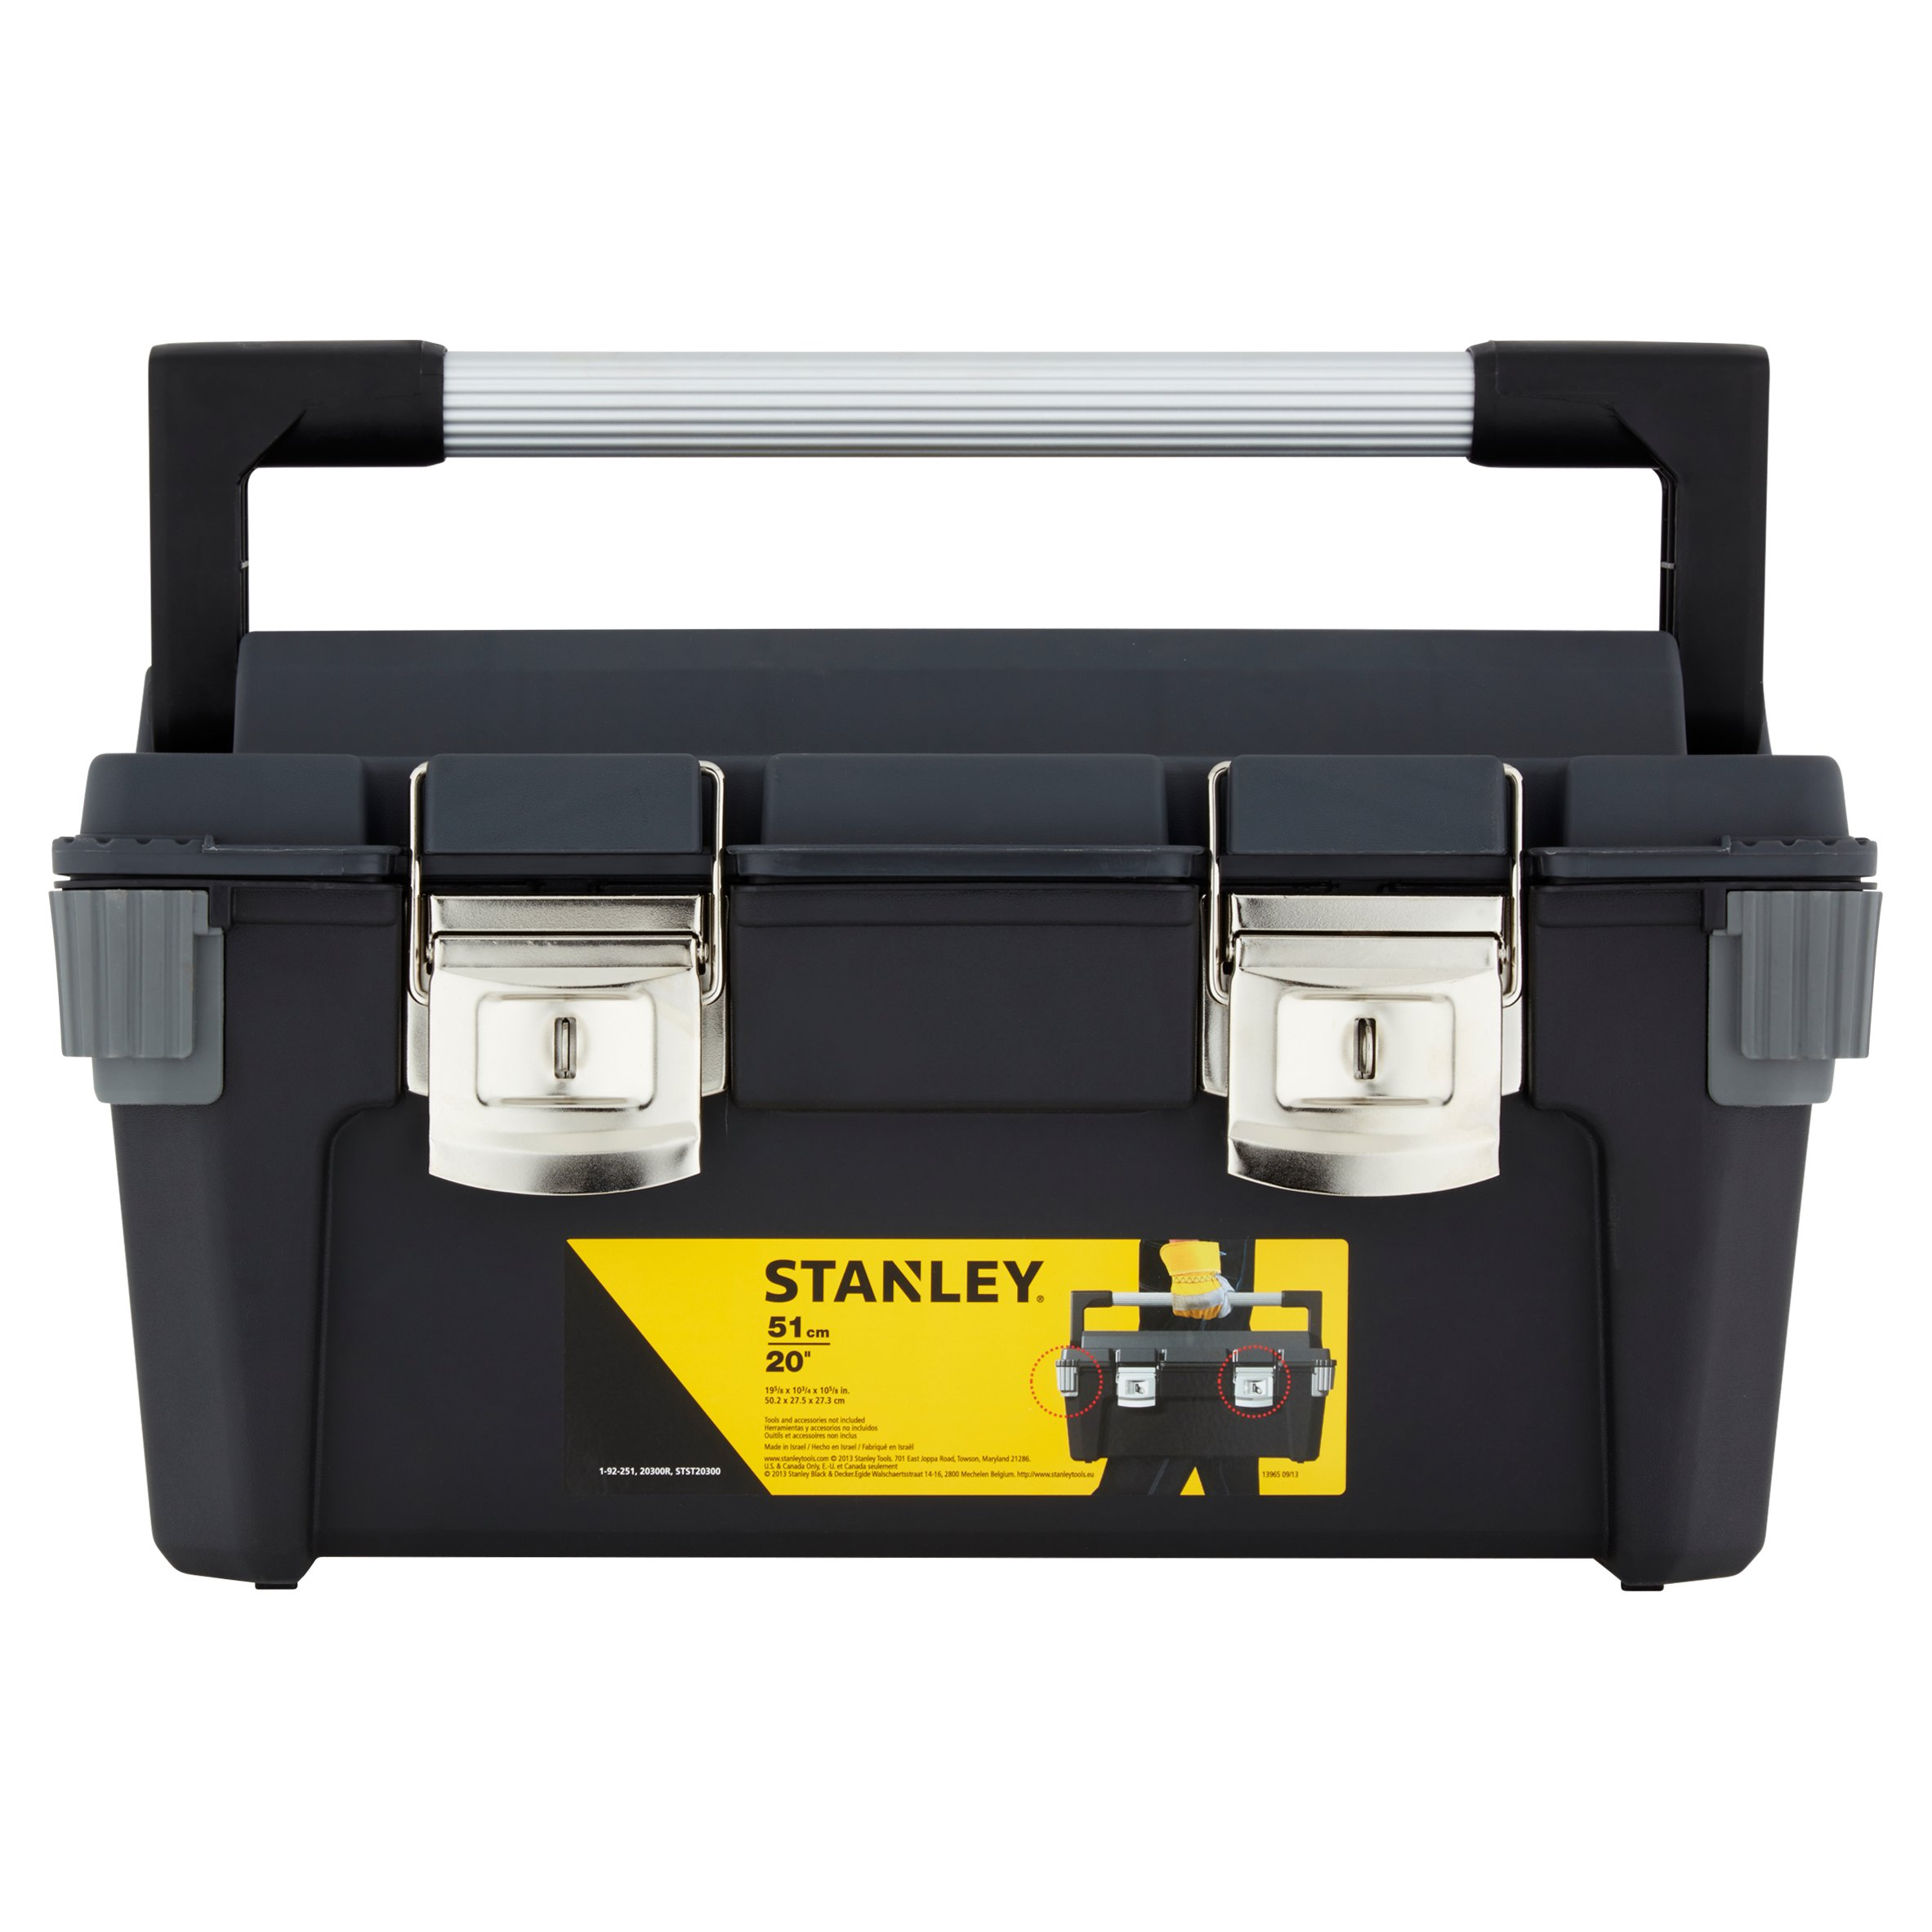 Craft box on wheels - Stanley 20 Tool Box